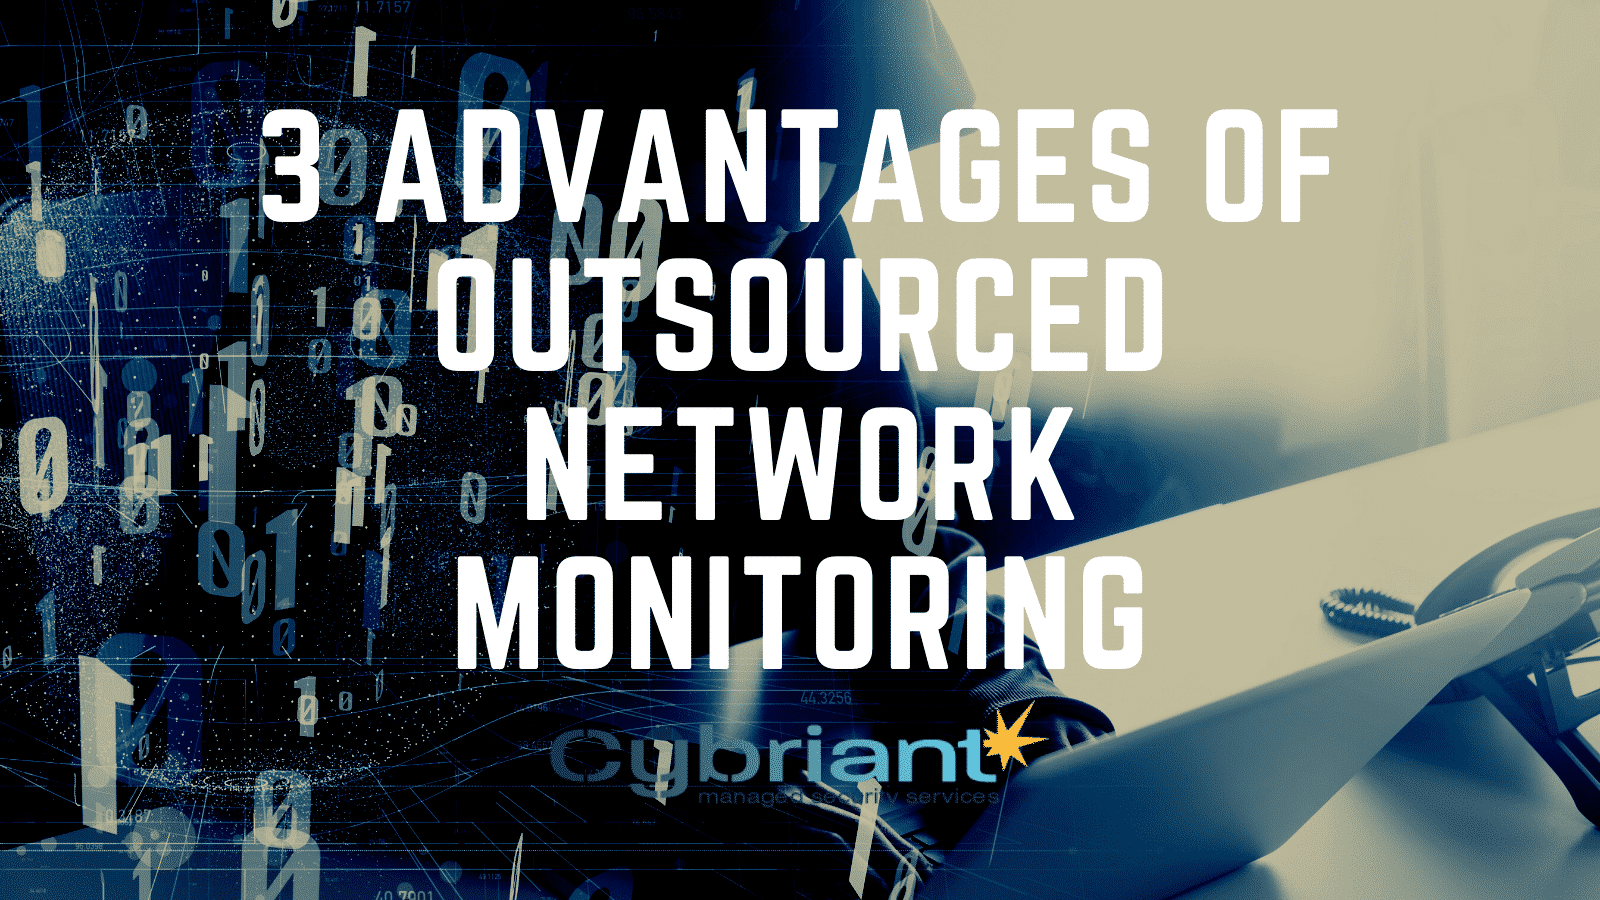 3 Advantages of Outsourced Network Monitoring